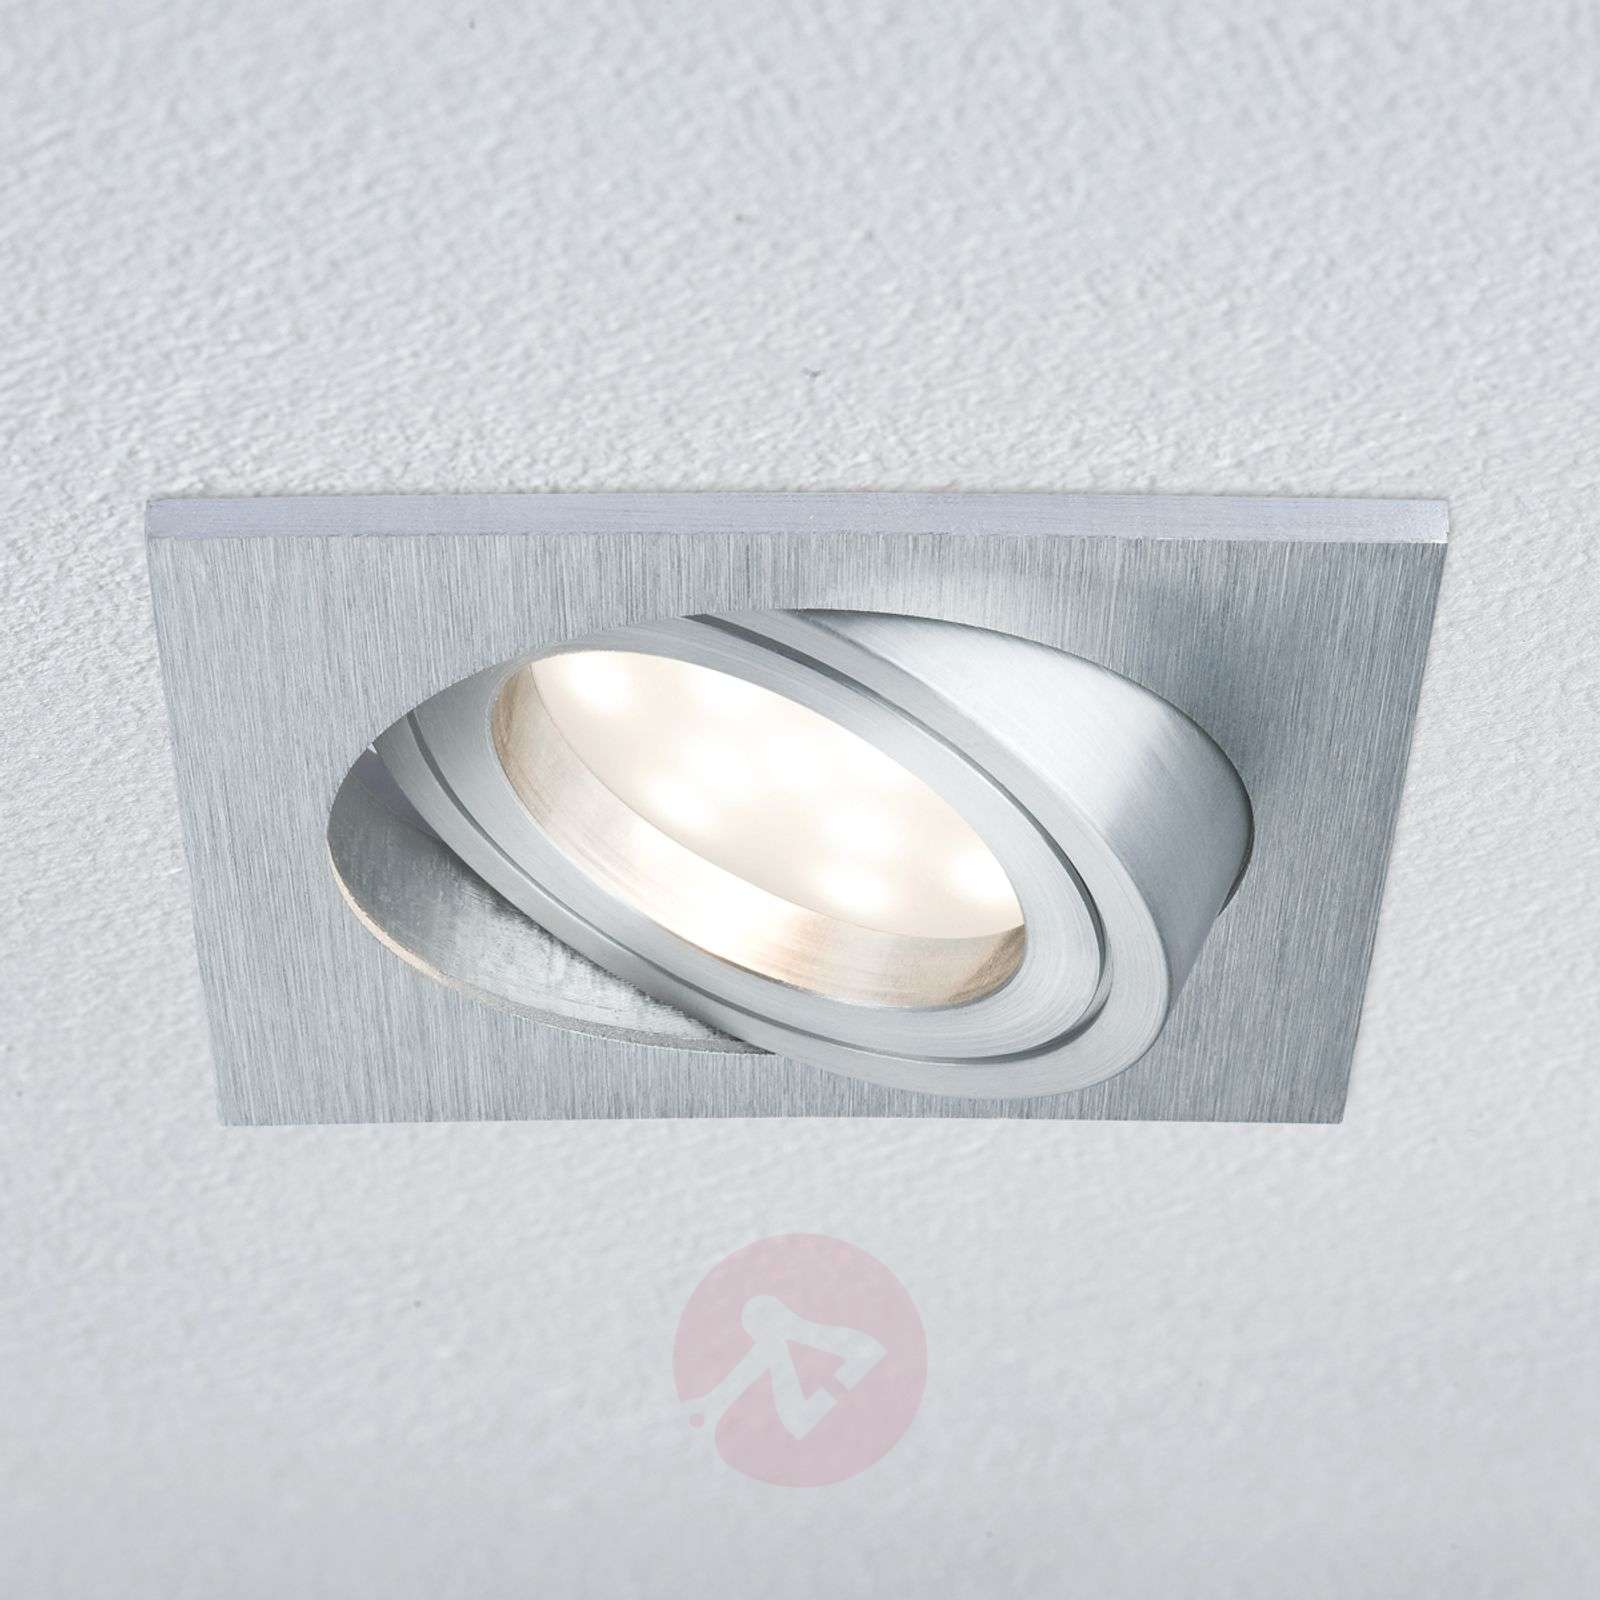 Ip23 Rectangulaire Led Lampe Encastrable Coin BxrodCe